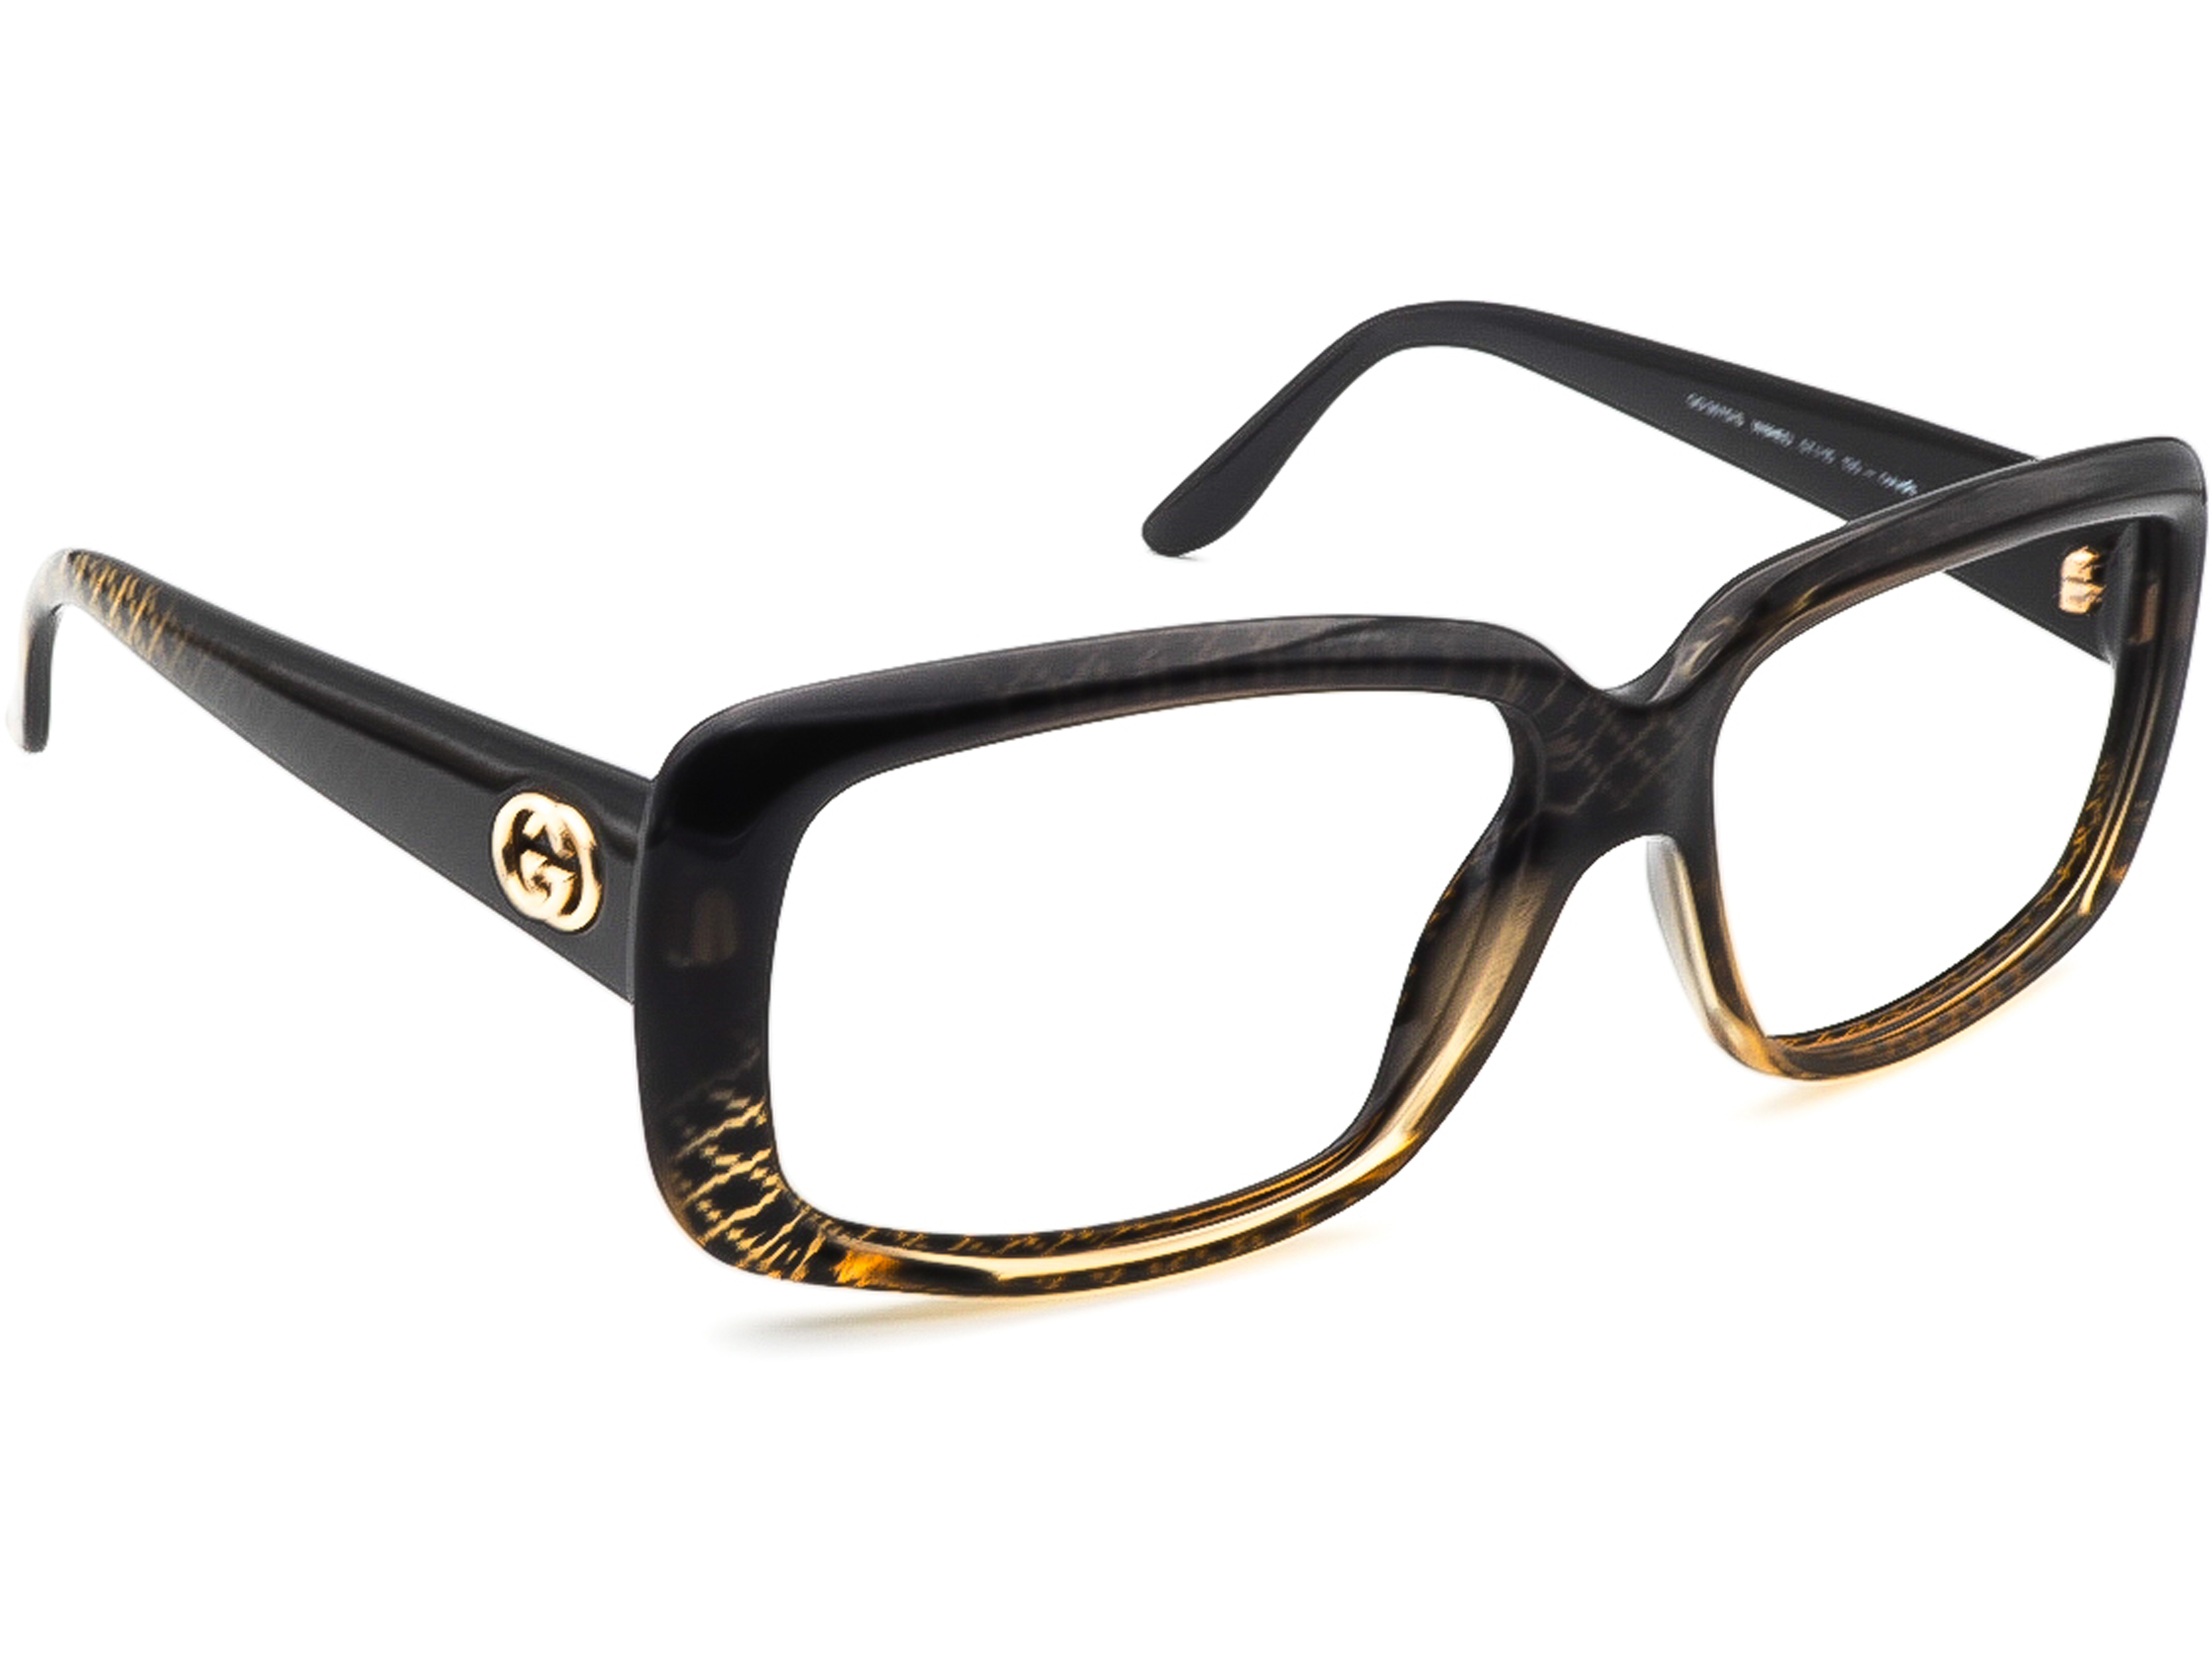 Gucci GG 3575/S W8HED Sunglasses Frame Only